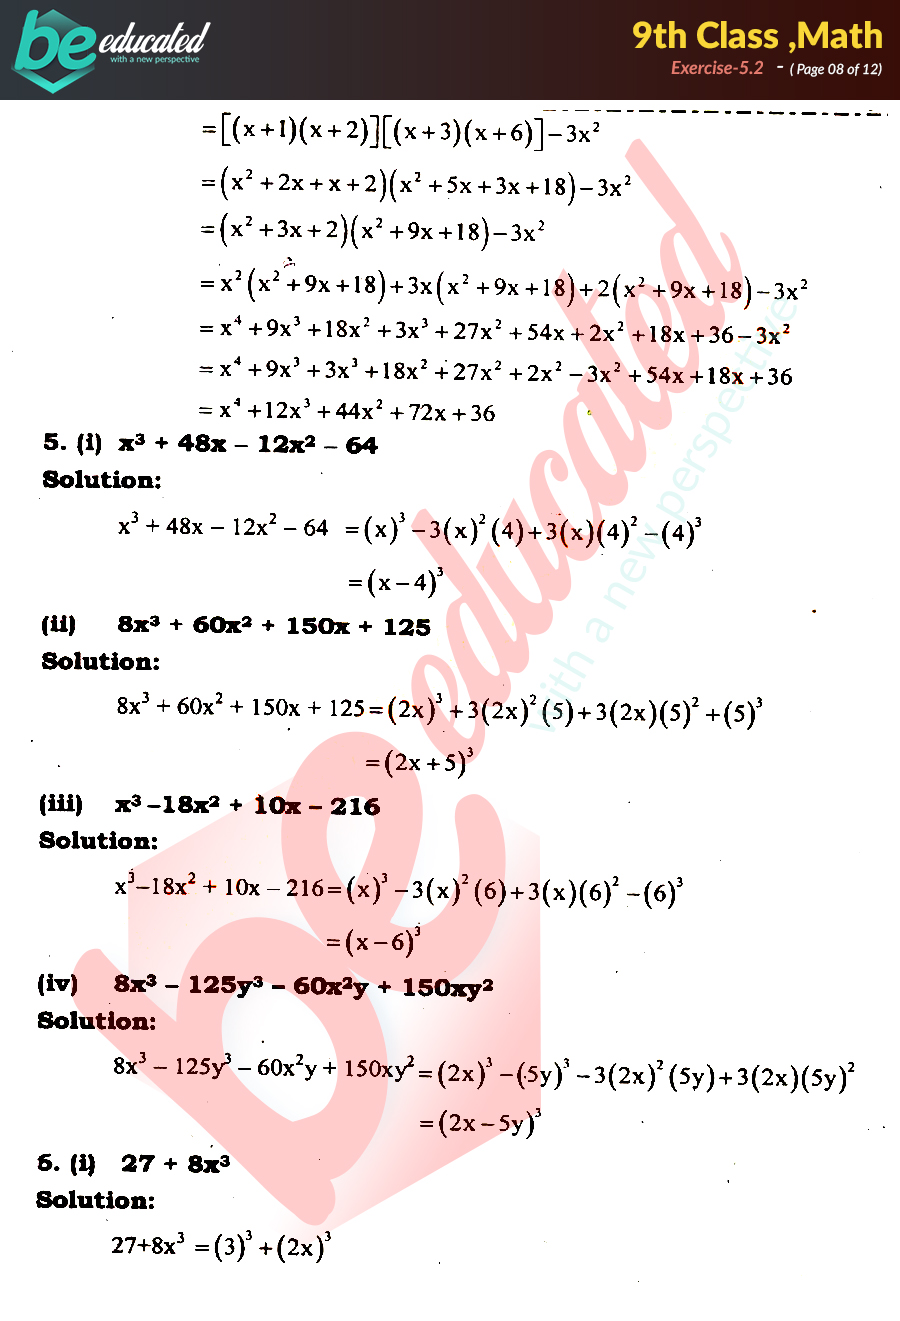 Exercise 5 2 Math 9th Class Notes - Matric Part 1 Notes